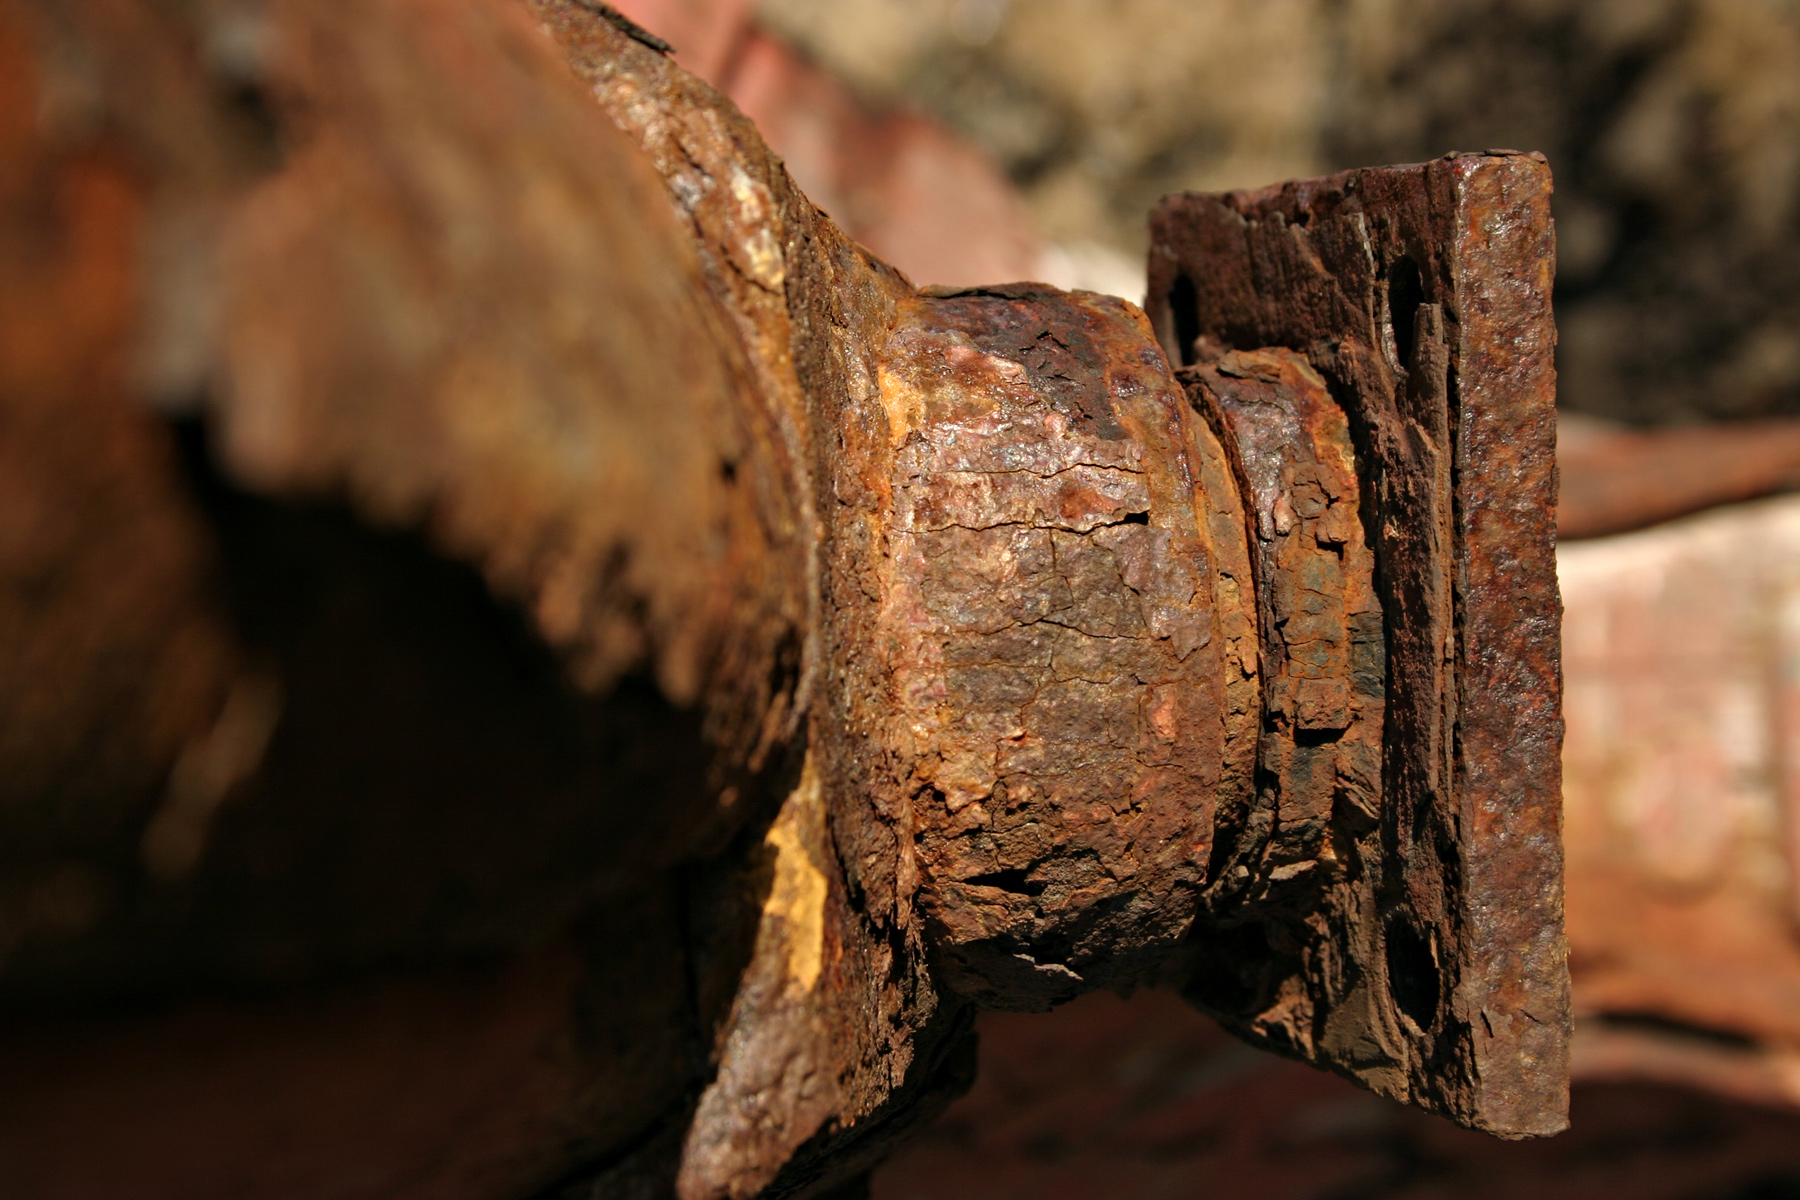 Free photo: Rusted metal object - Corrosion, Metal, Plate ...